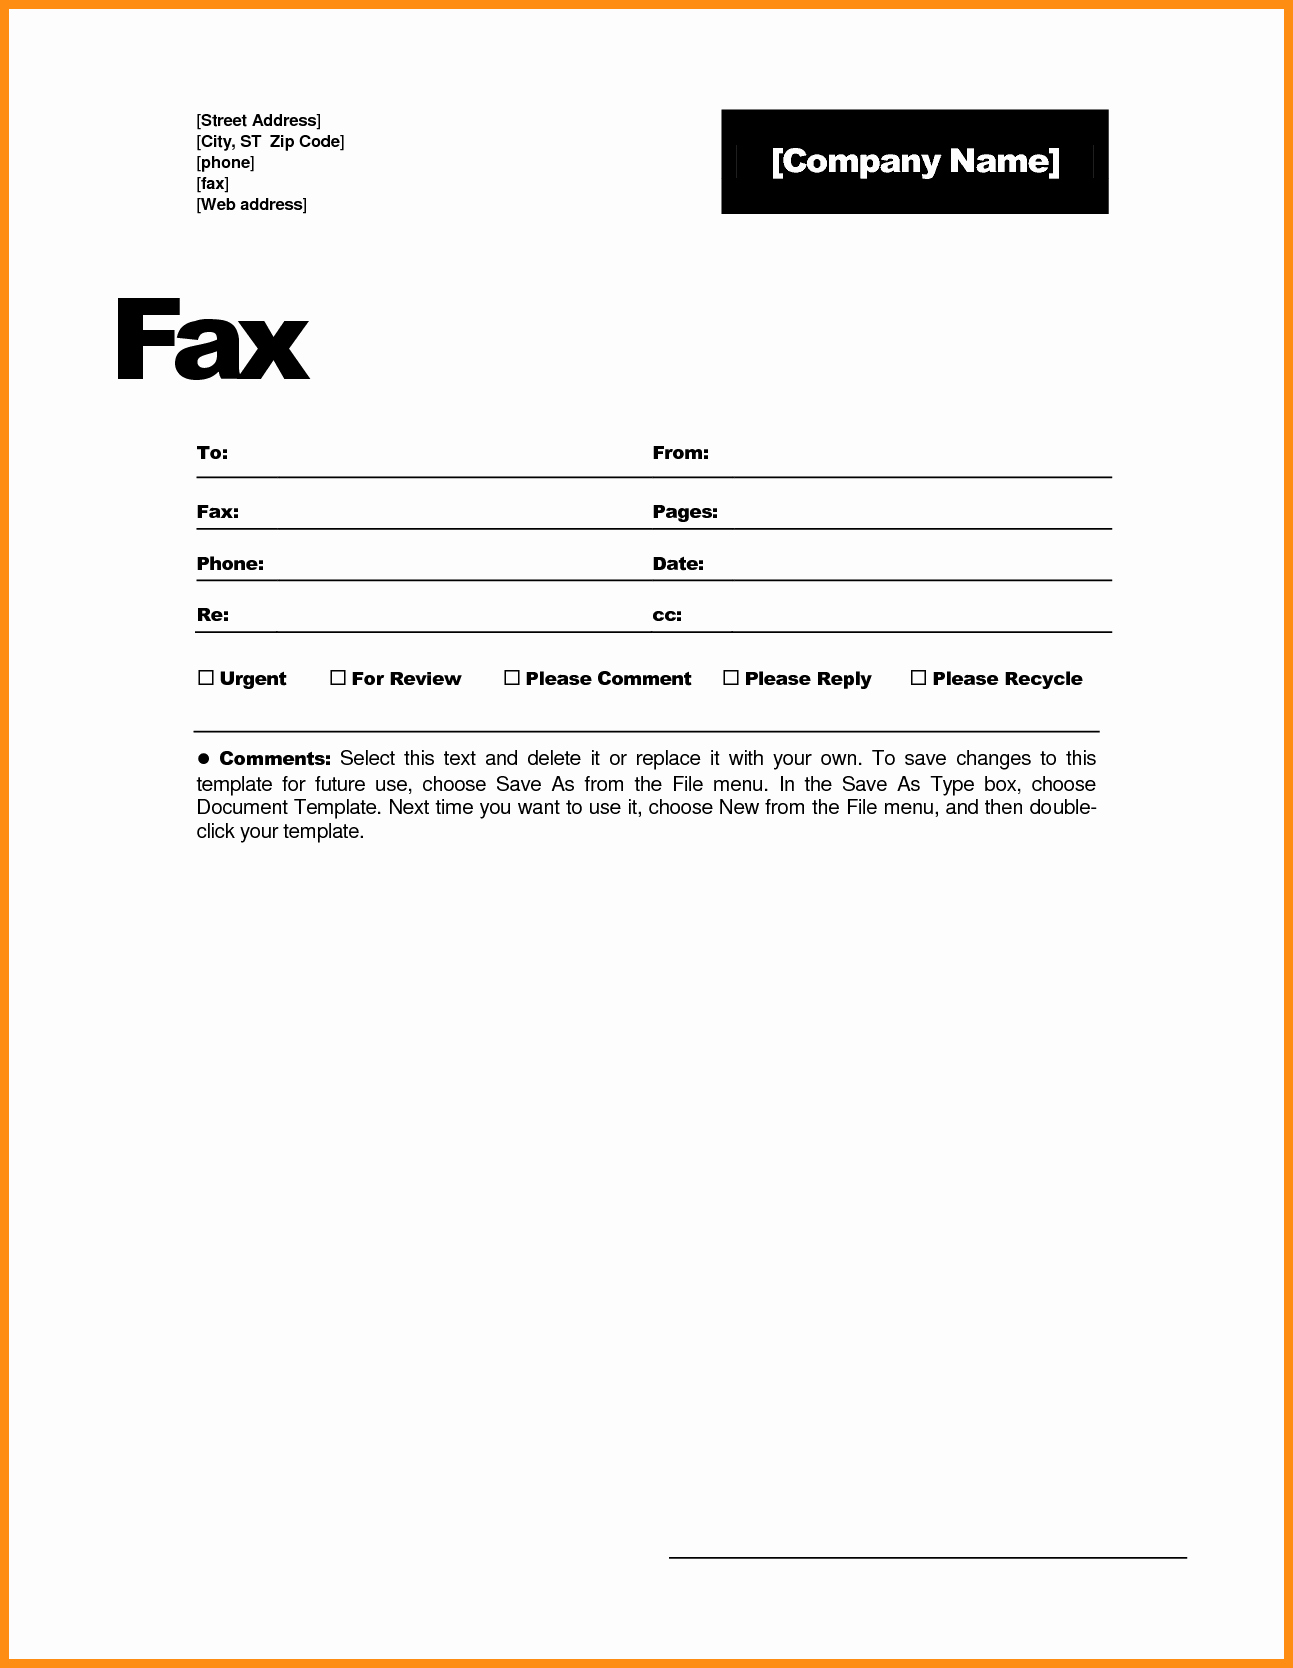 Fax Cover Sheet Word Document Fresh 6 Free Fax Cover Sheet Template Word